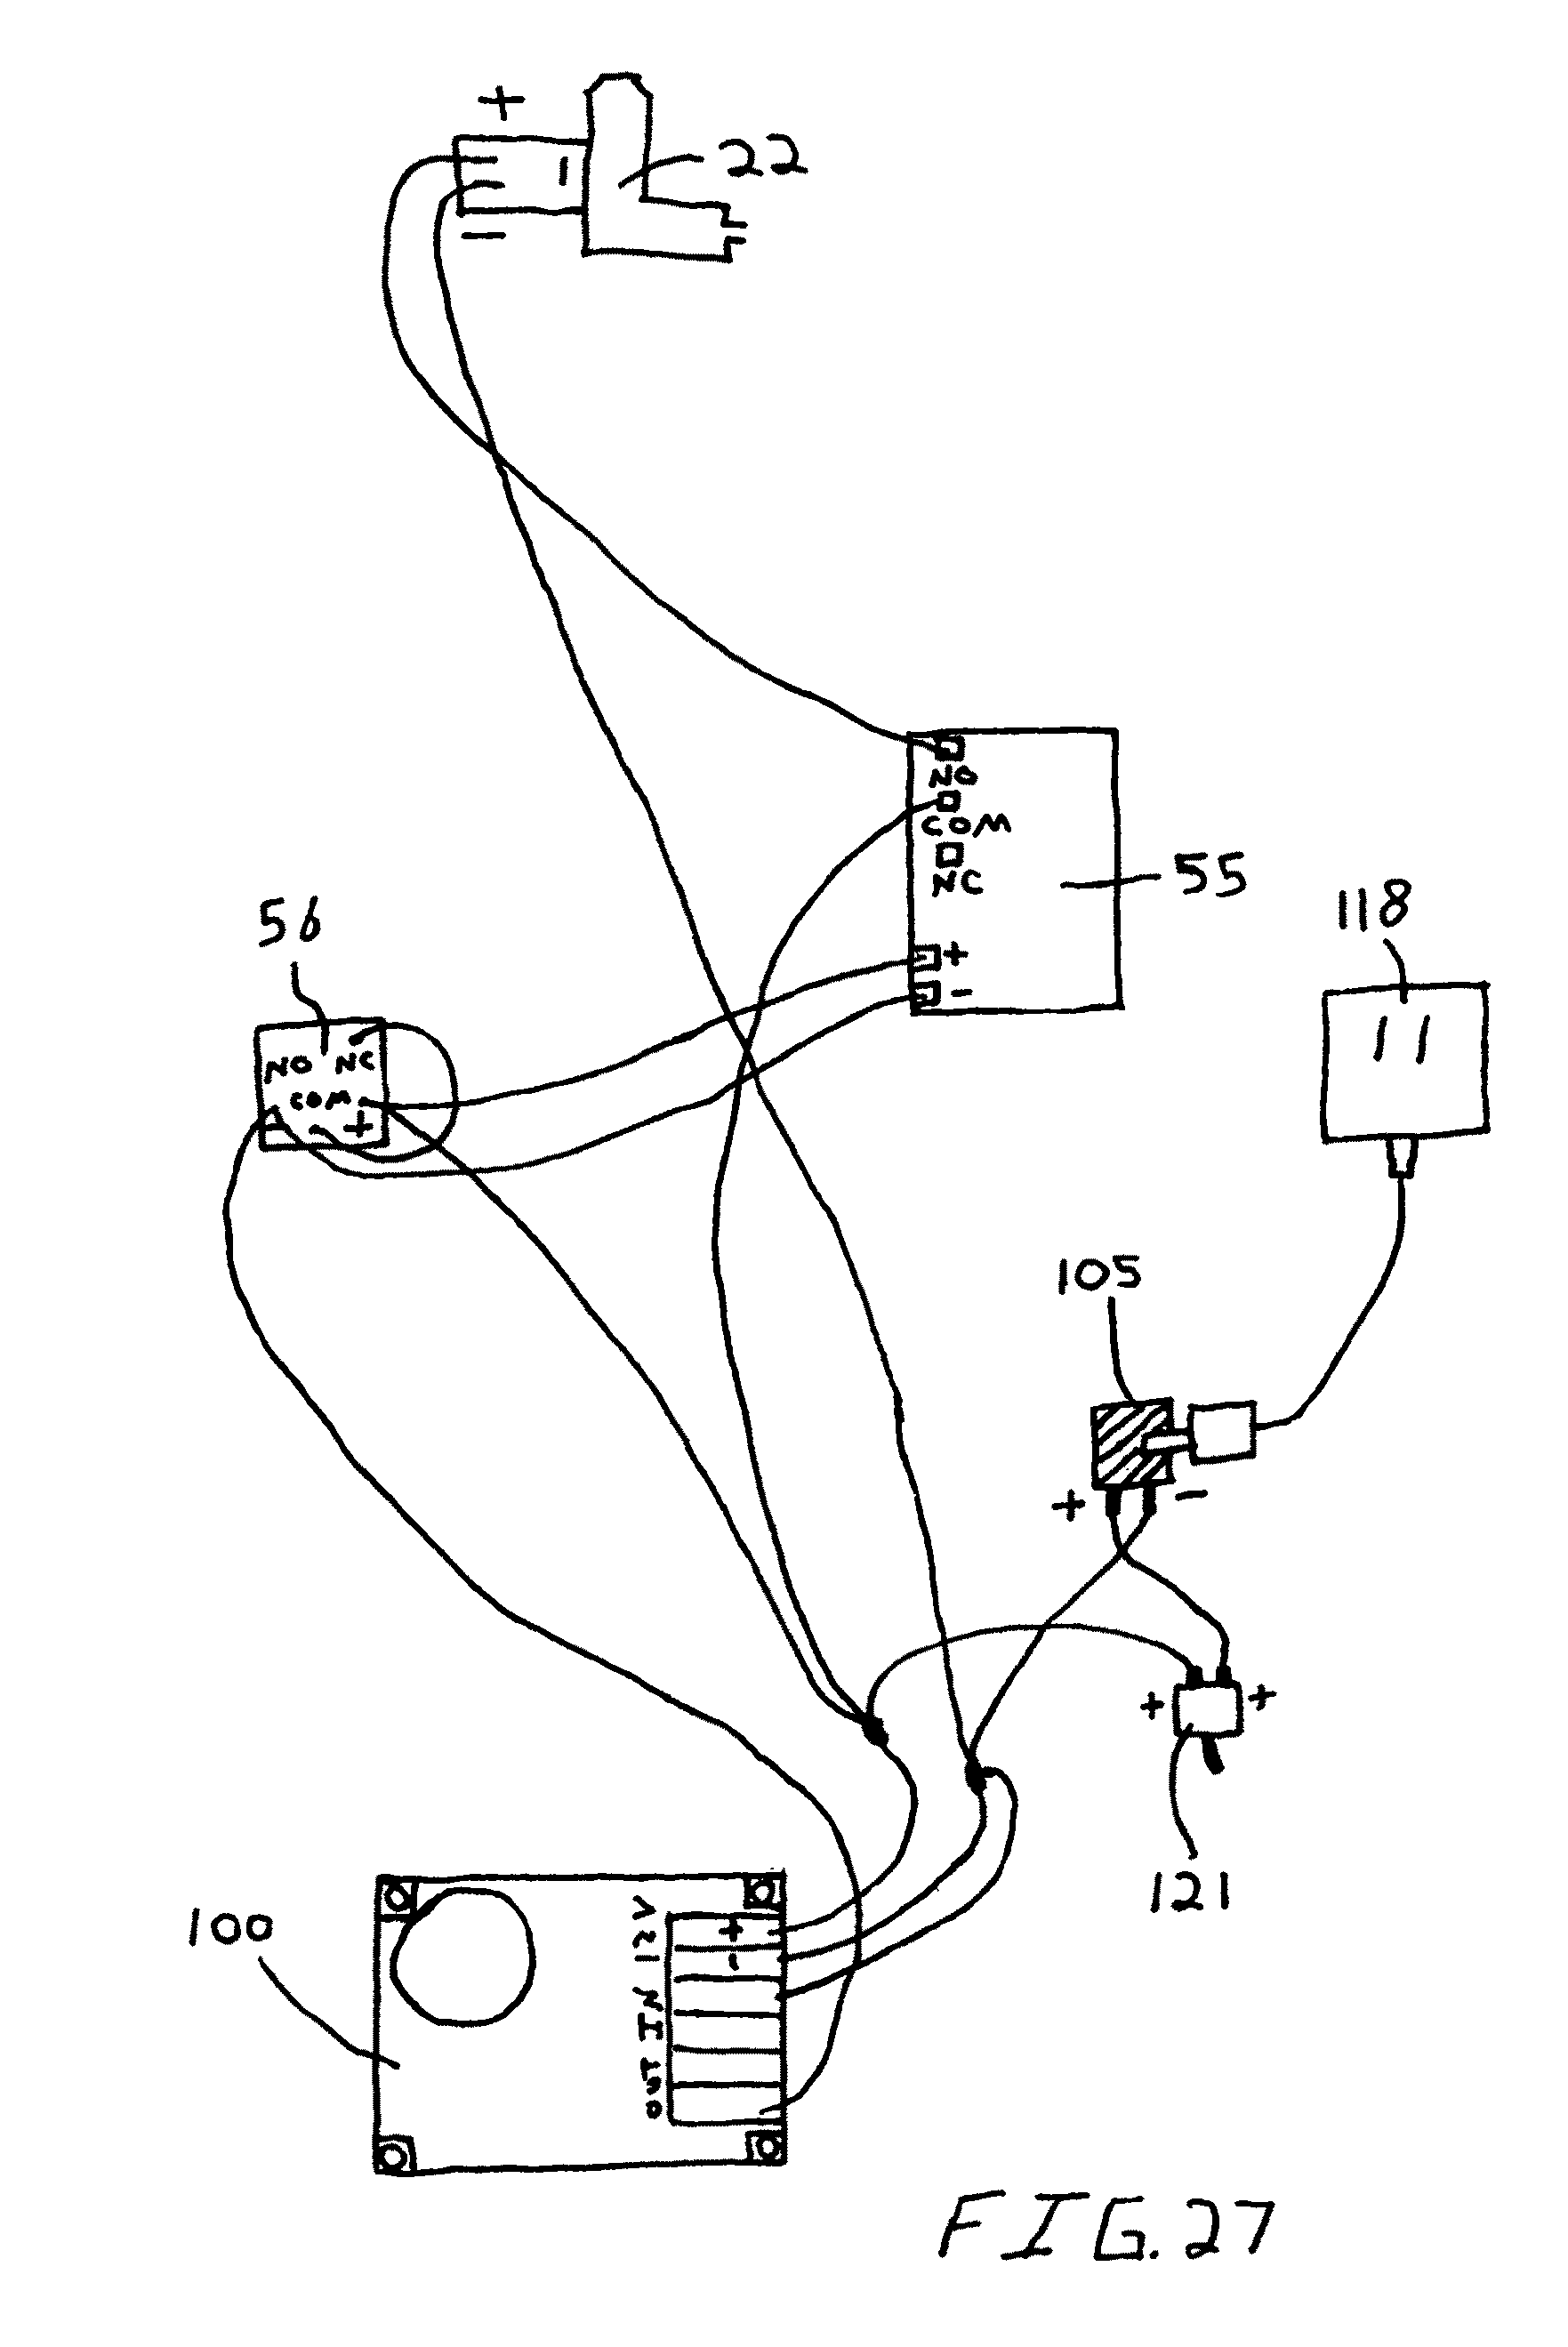 hubbell hbl2721 wiring diagram